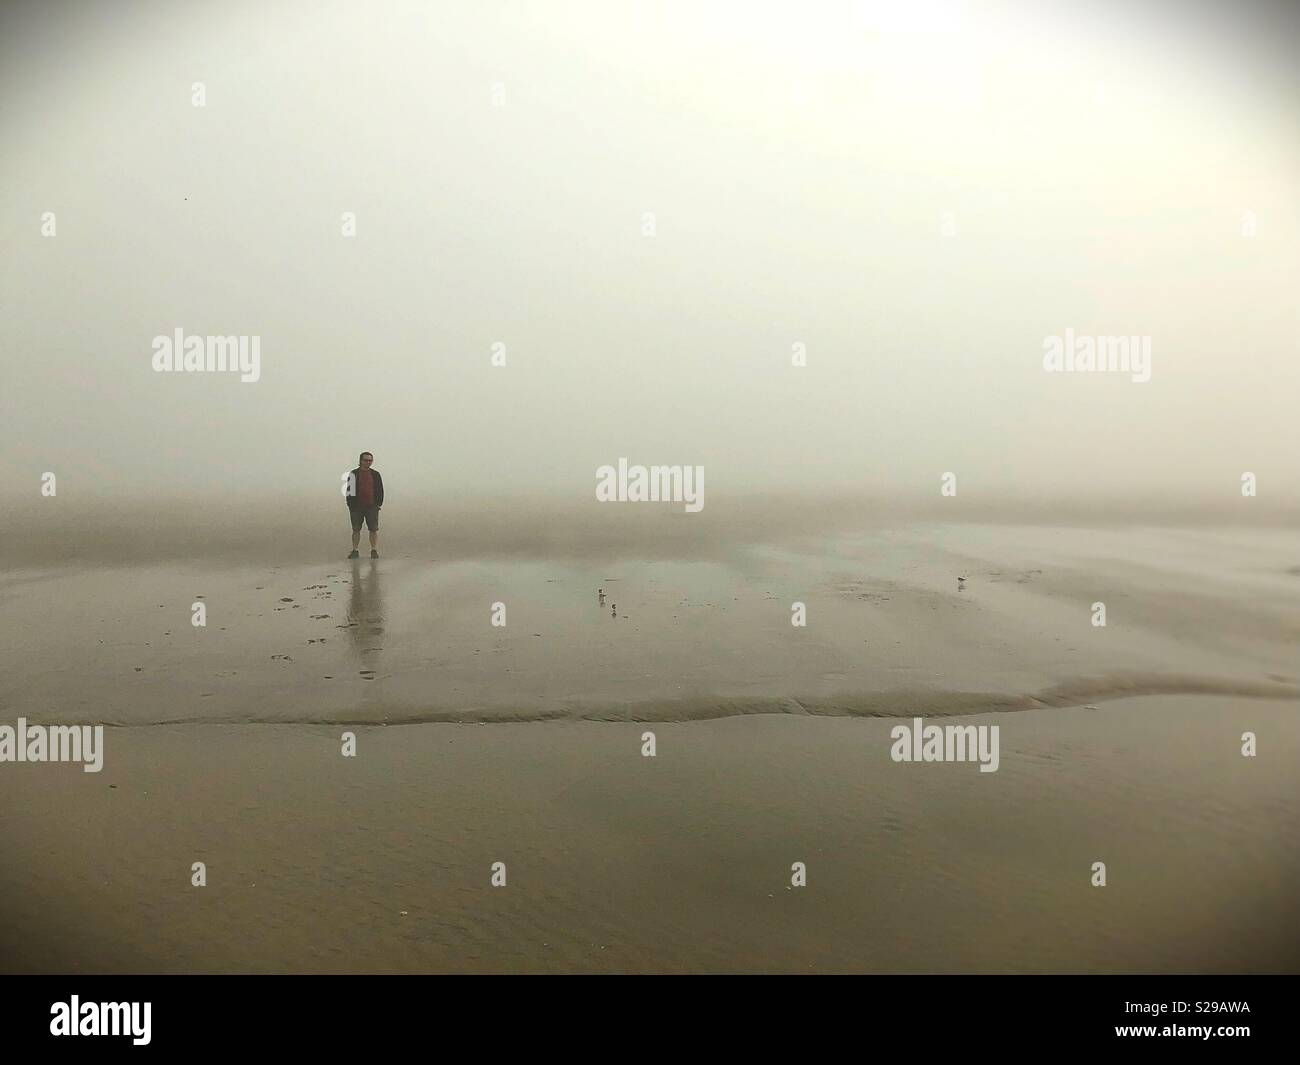 A man standing alone on a foggy beach. - Stock Image